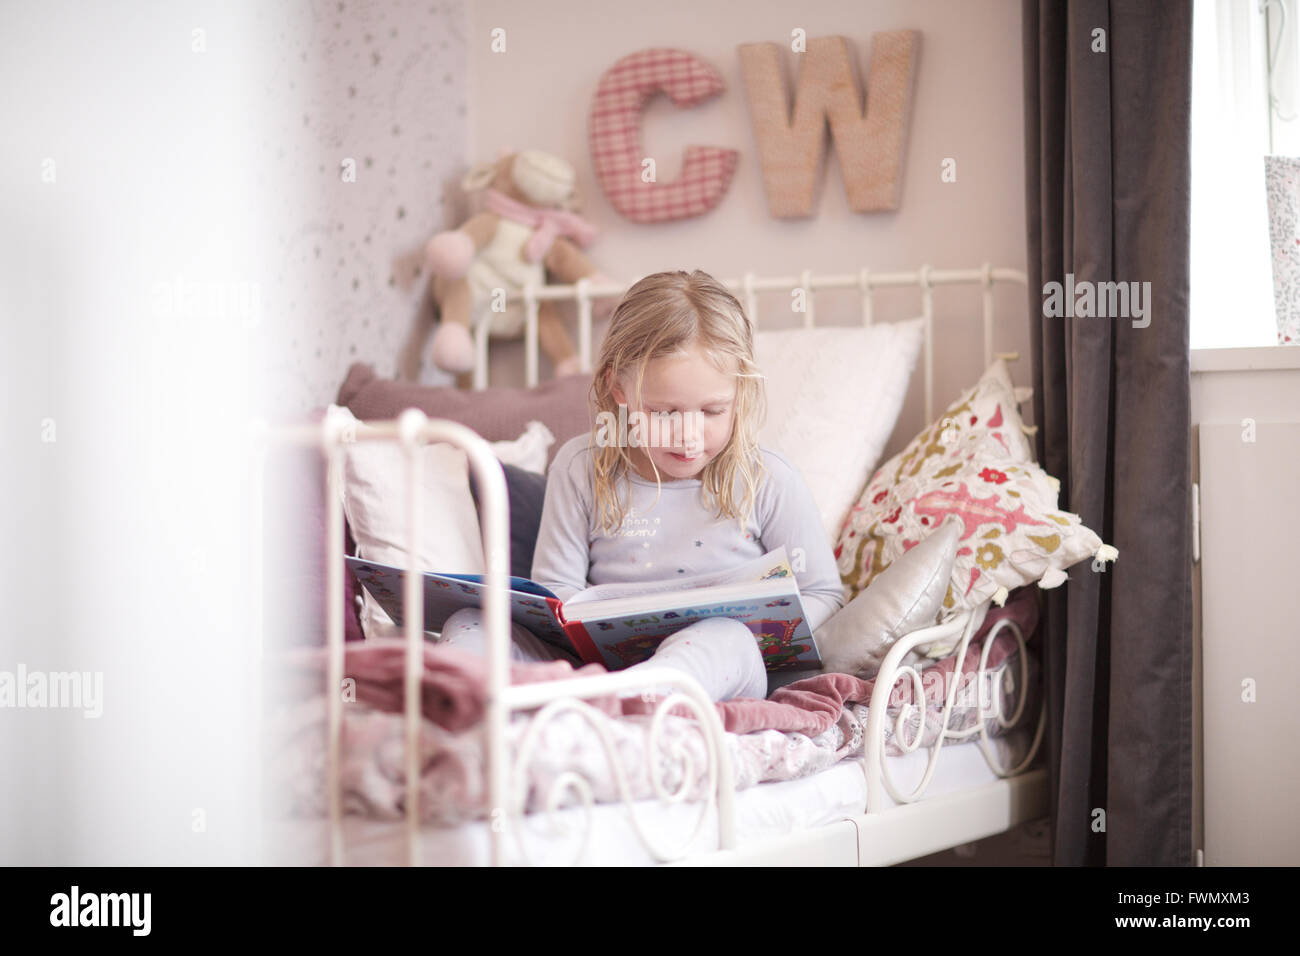 Little girl reading storybook. focus, kid, l'apprentissage, lire. Photo Stock